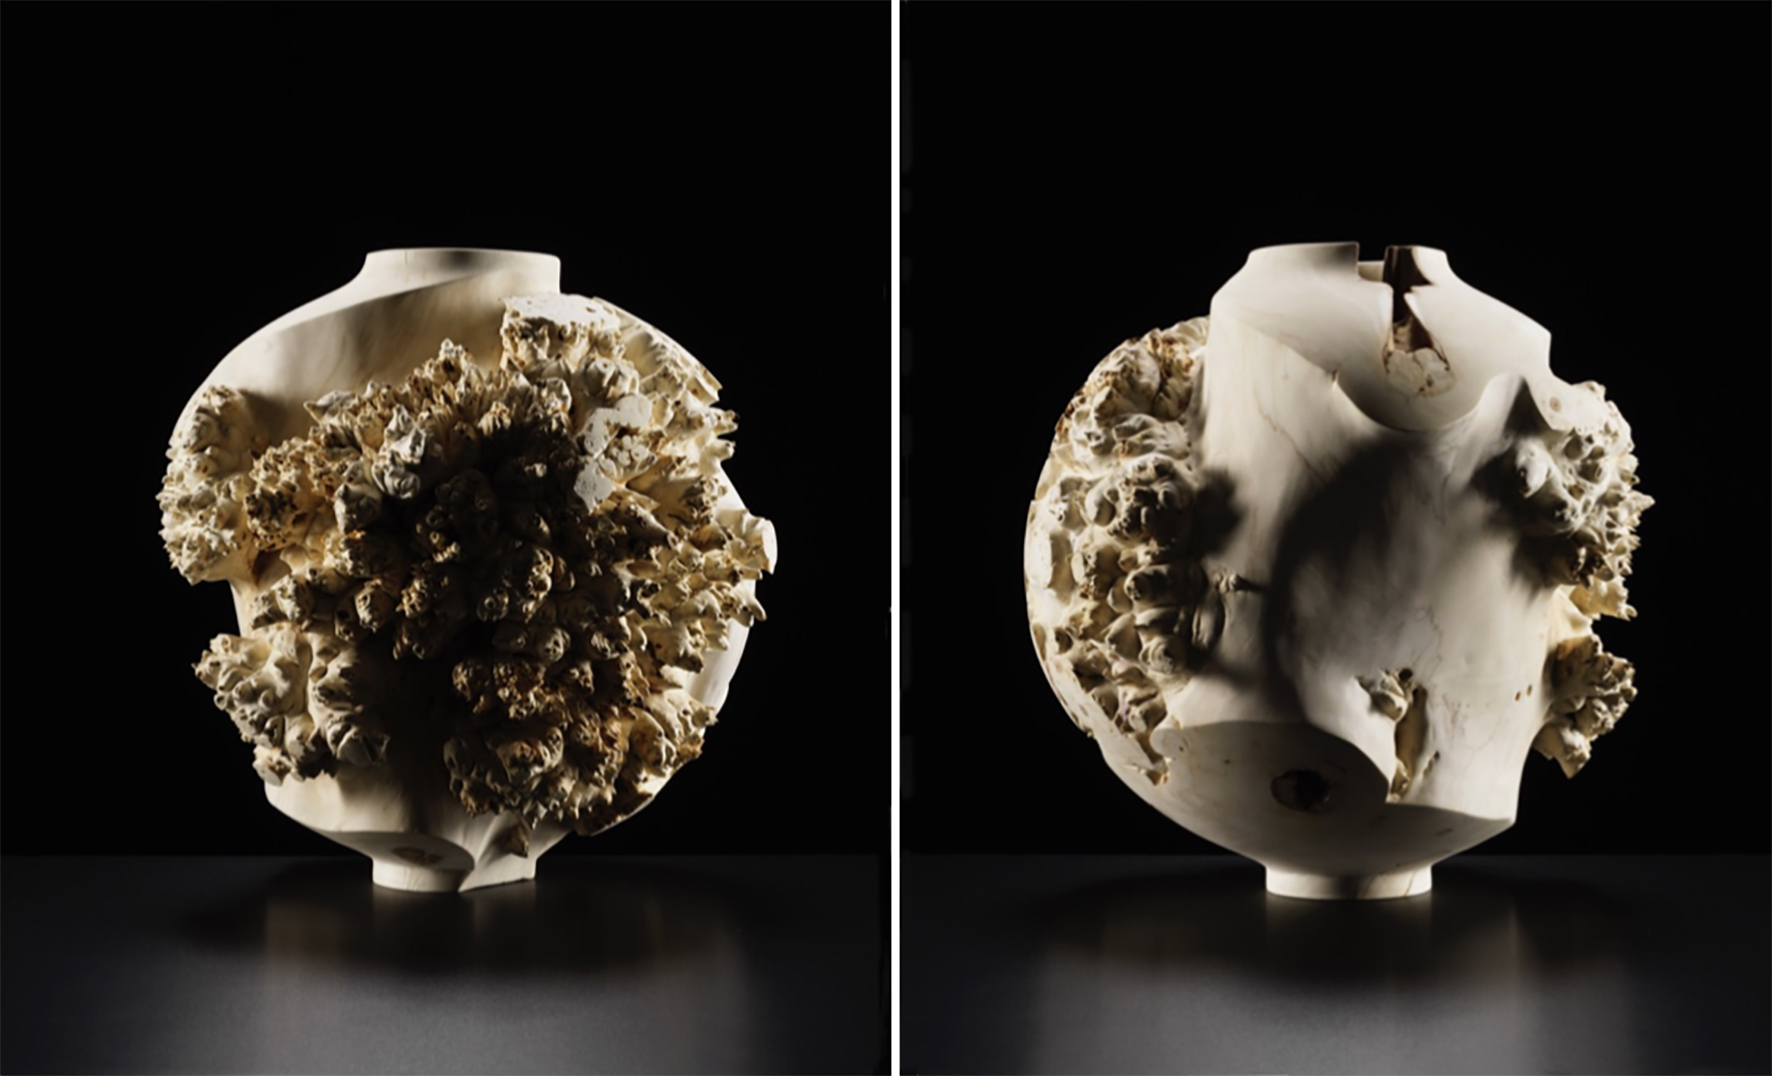 Artist: Eleanor Lakelin   Echoes of Amphora: III/19  ⓒ Michael Harvey Horse Chestnut Burr The  Echoes of Amphora  series was on display at Sarah Myerscough Gallery booth - Masterpiece London 2019